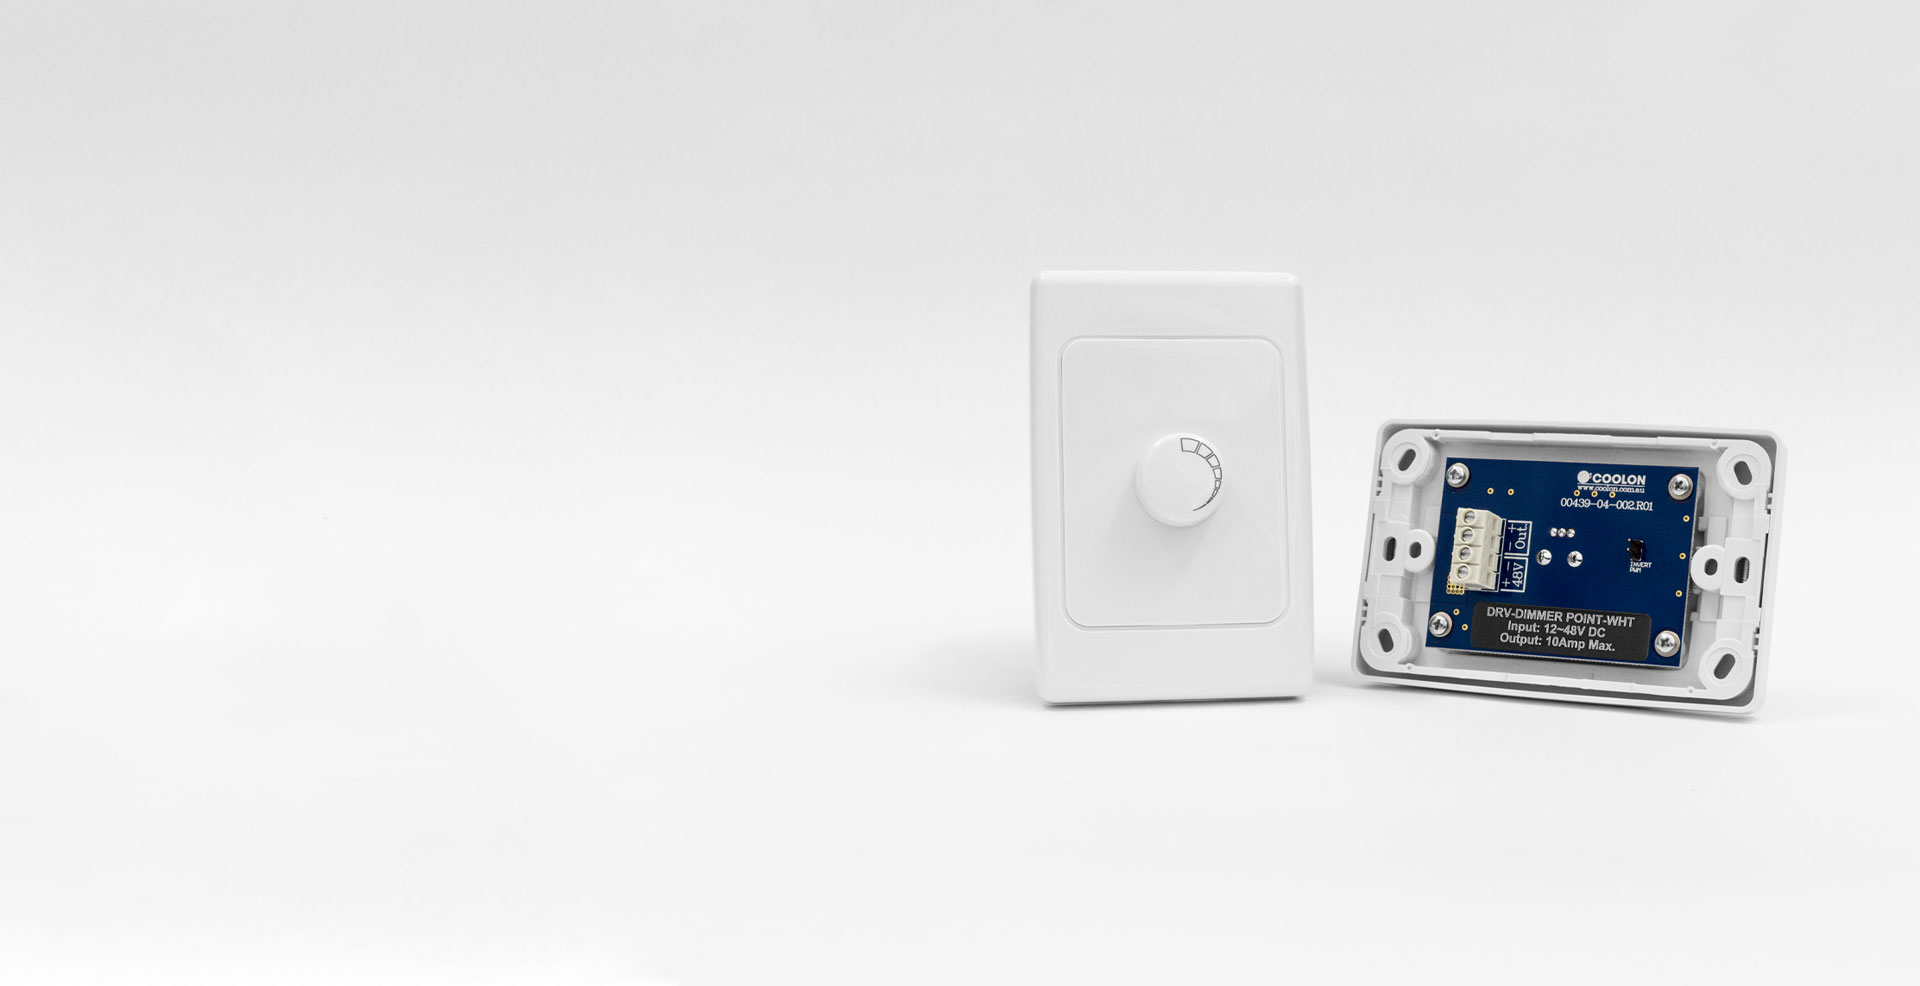 The Dimmer Point driver is designed to suit most indoor LED applications. A compact design allows it to be installed as a standard electrical faceplate.